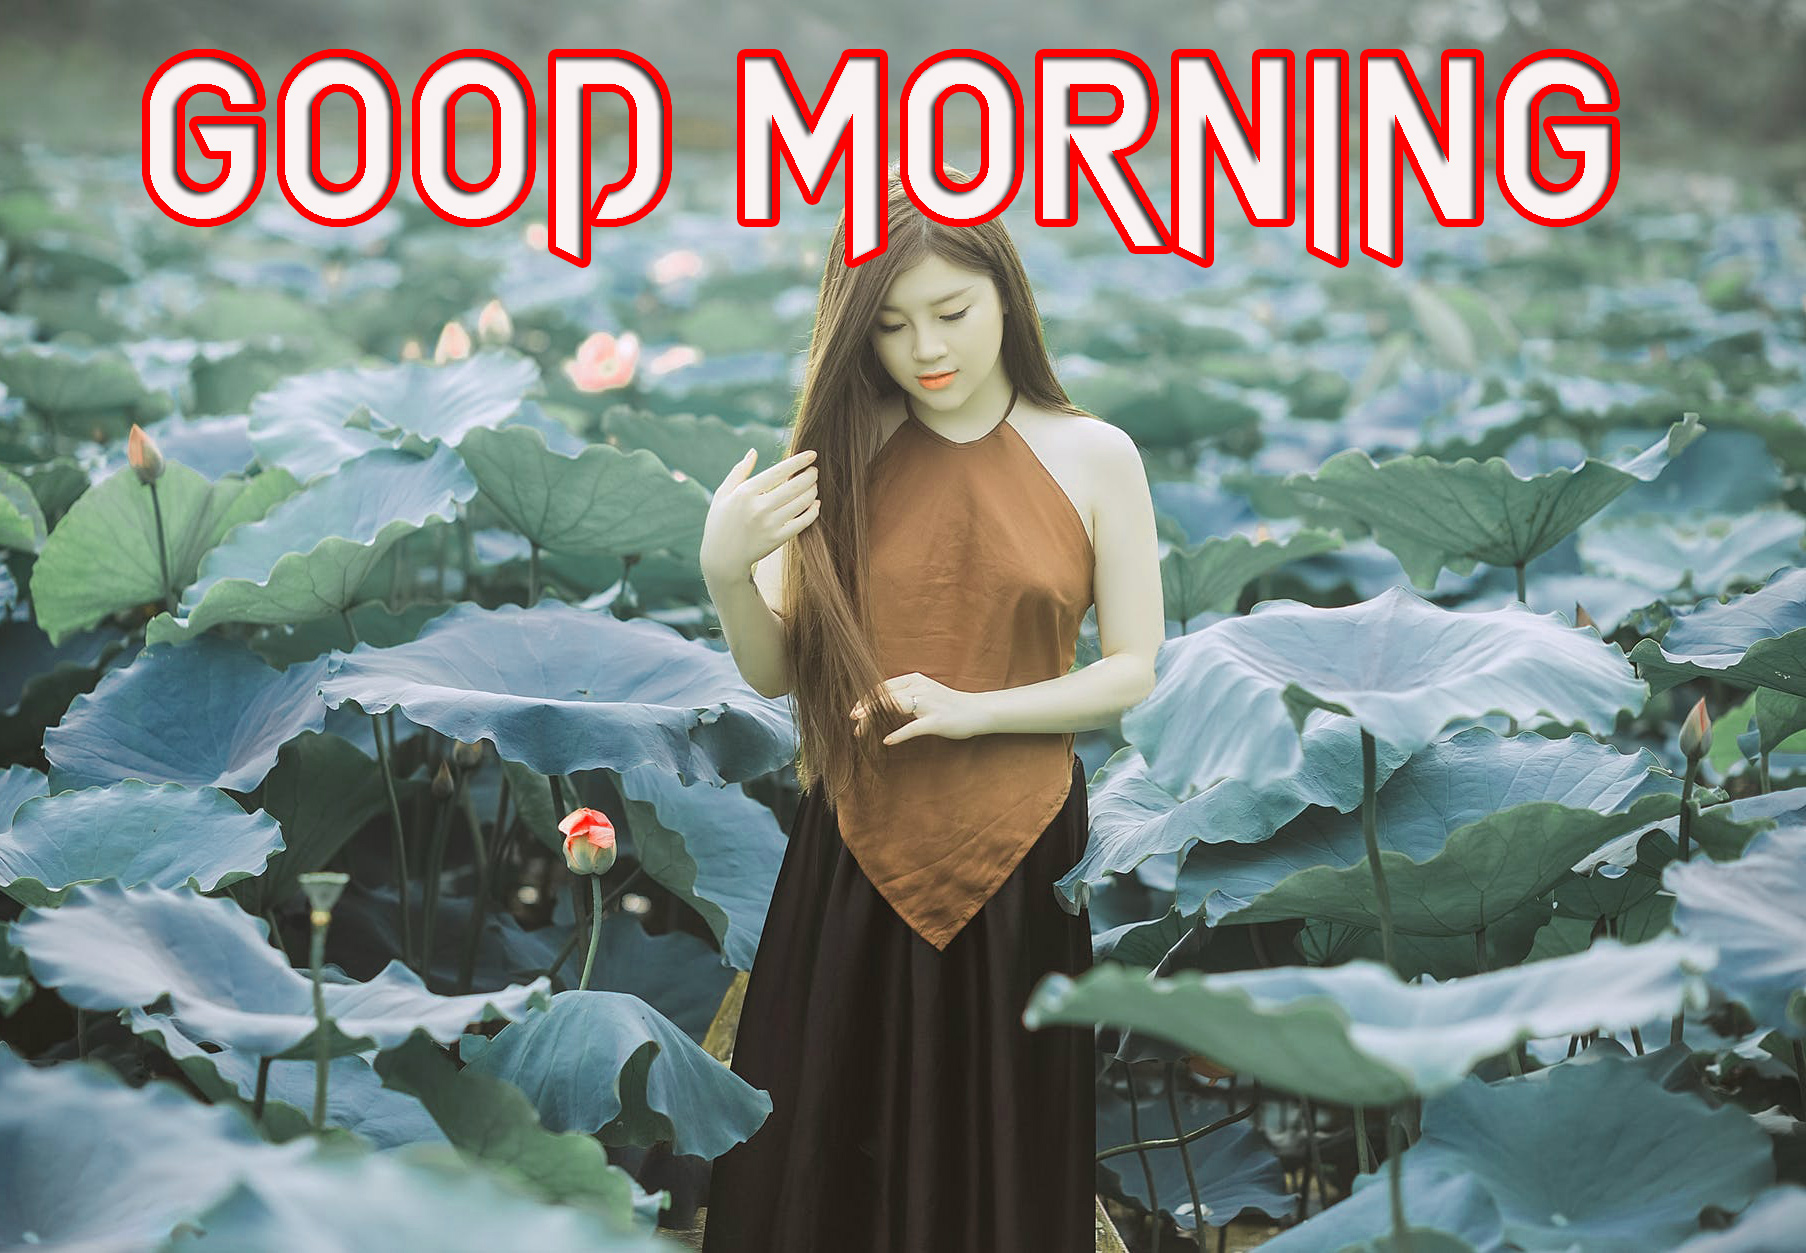 GOOD MORNING IMAGES WALLPAPER PHOTO FOR BEST FRIEND